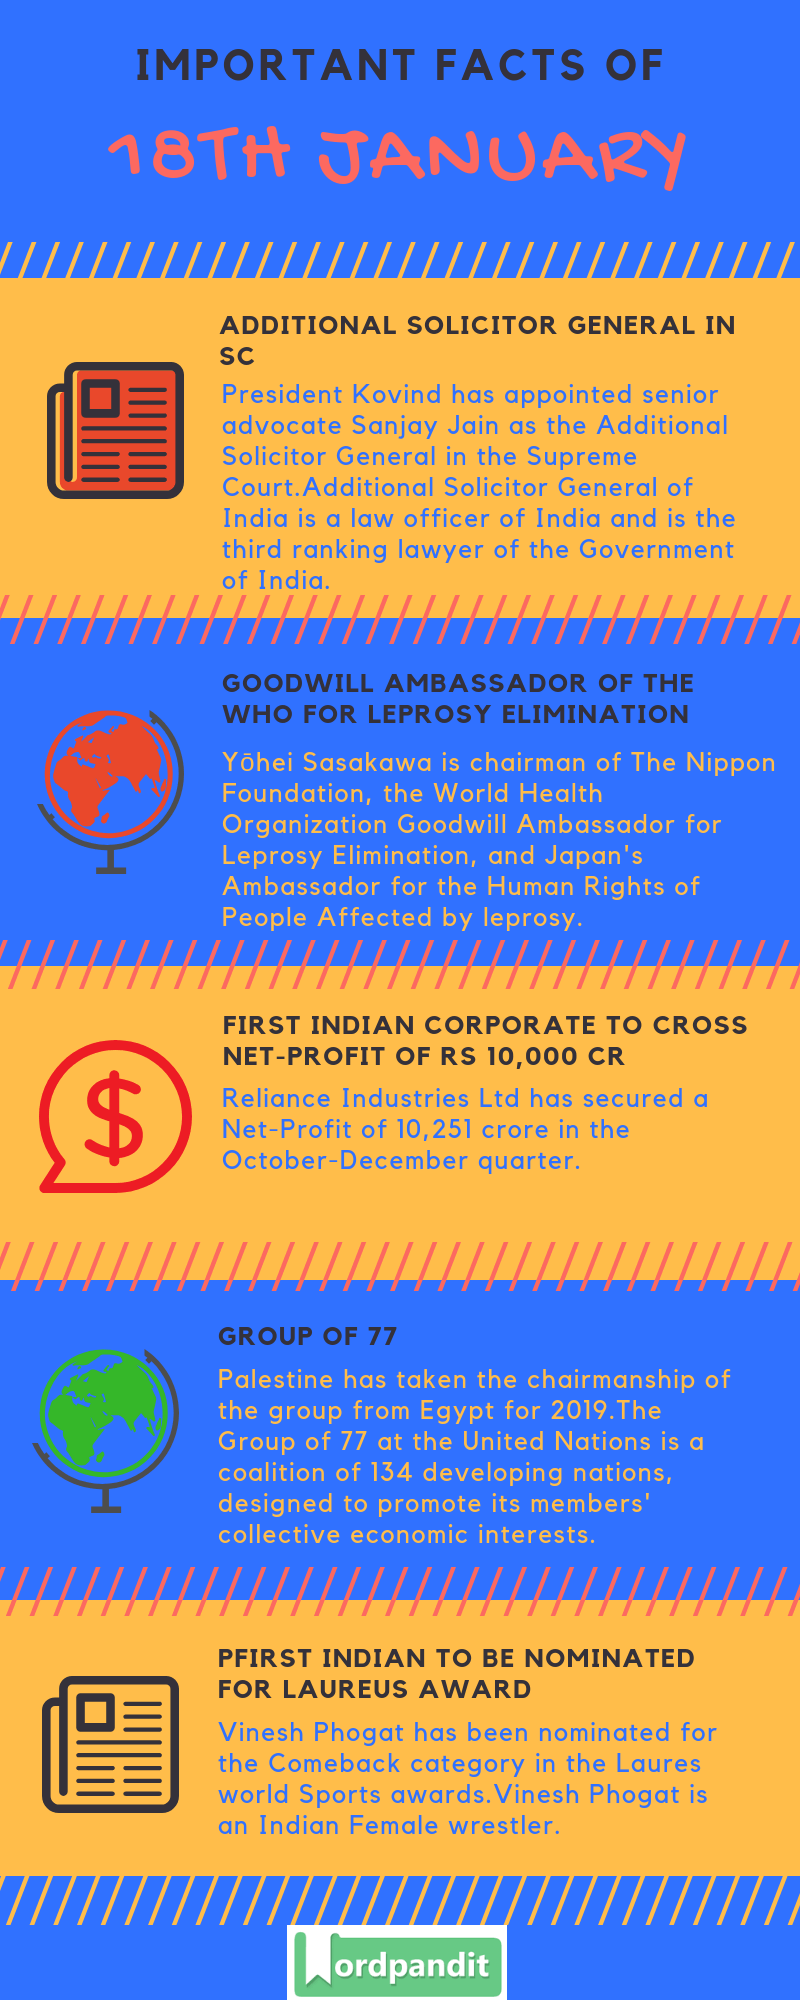 Daily Current Affairs 18 January 2019 Current Affairs Quiz 18 January 2019 Current Affairs Infographic